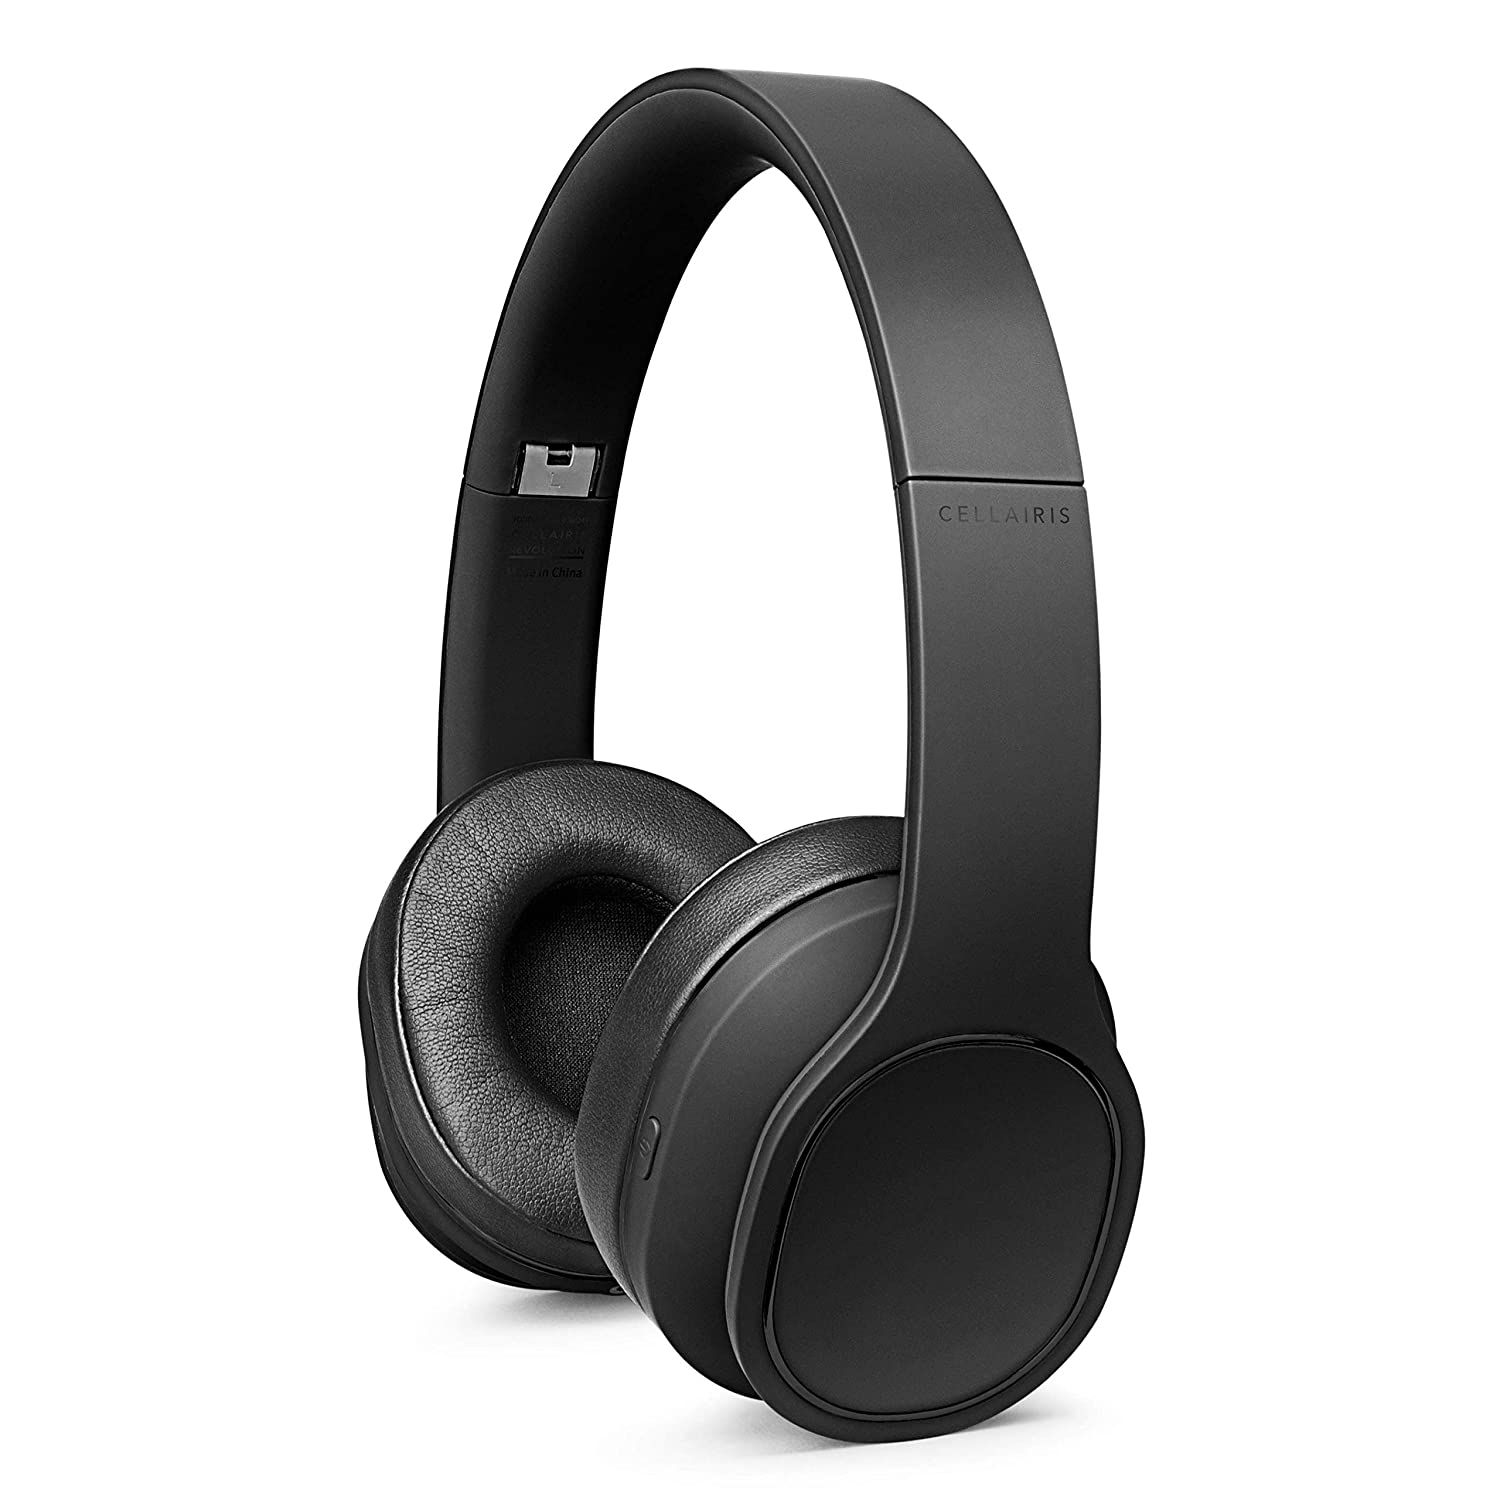 Active Noise Cancelling Headphones, Bluetooth Capable with Mic, Deep Bass & for Over Ear, for Travel Work TV PC Cellphone, Black, Ultra Soft Ear Cushions, Soundproof by Cellairis